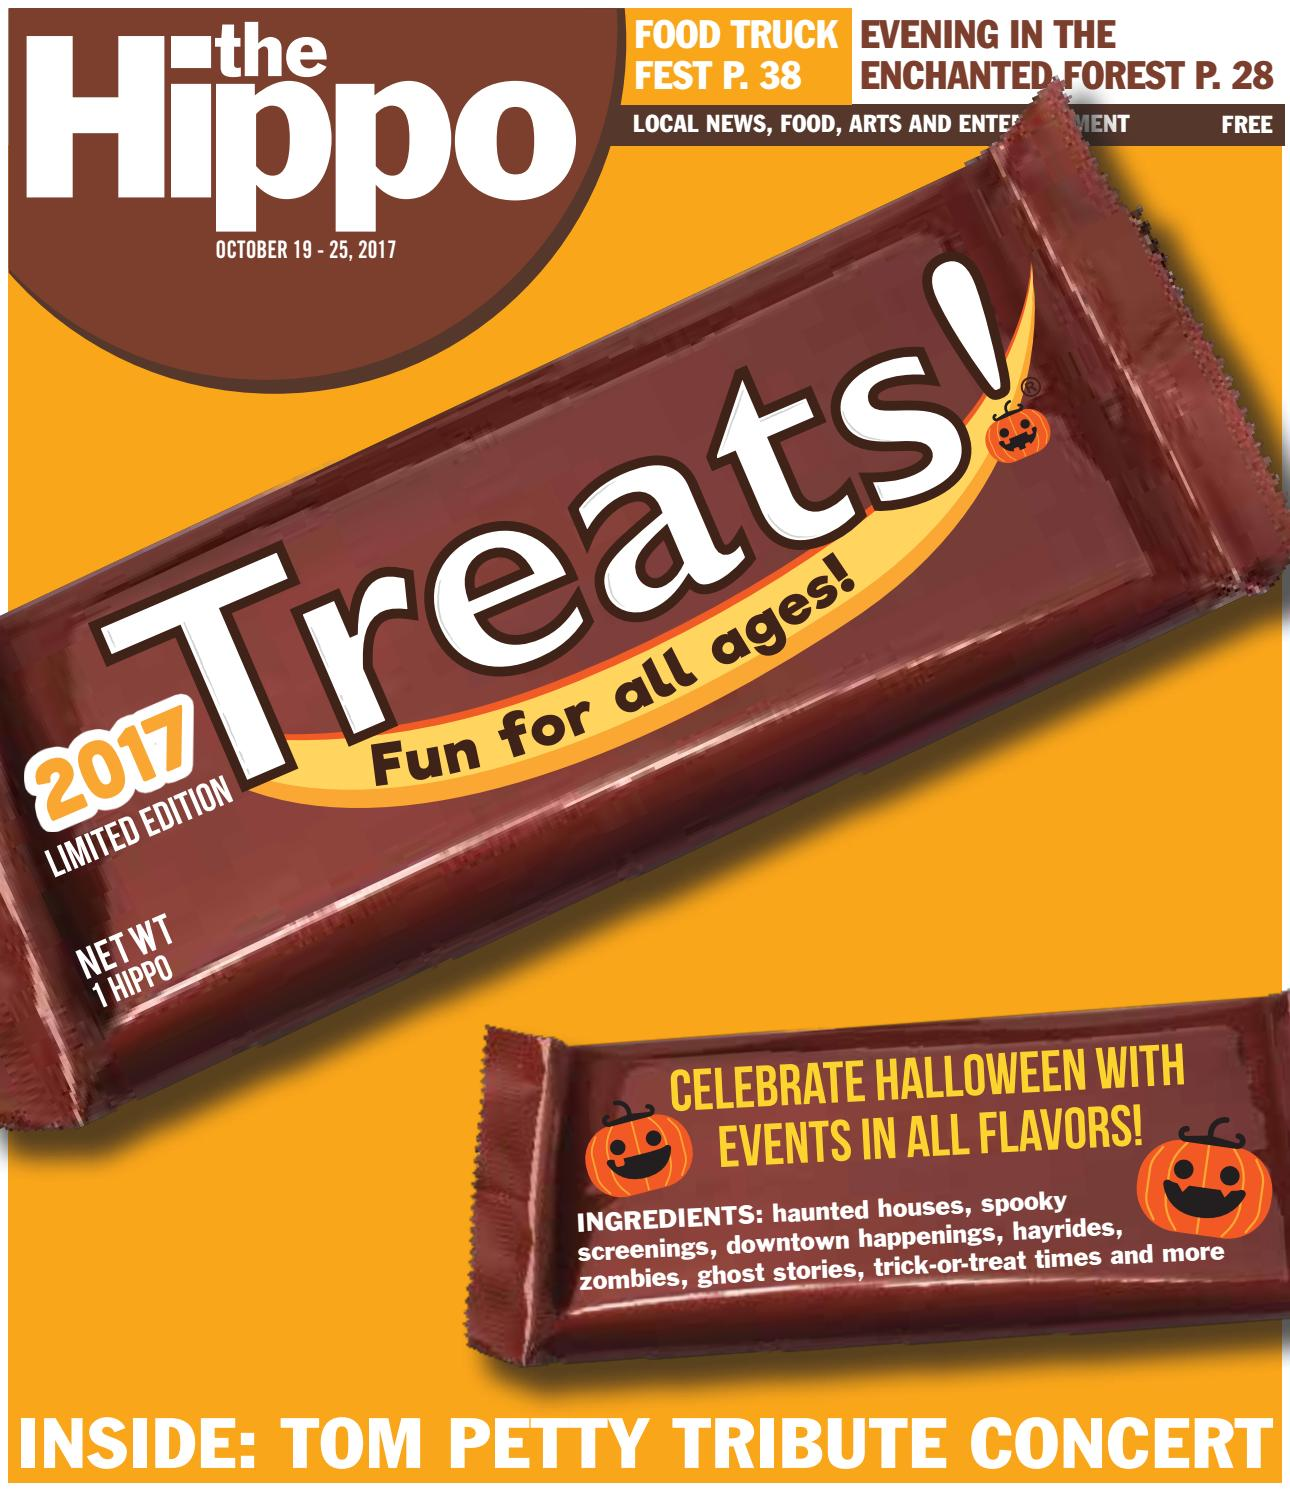 Rollins Halloween Howl 2020 19th Hippo 10/19/17 by The Hippo   issuu